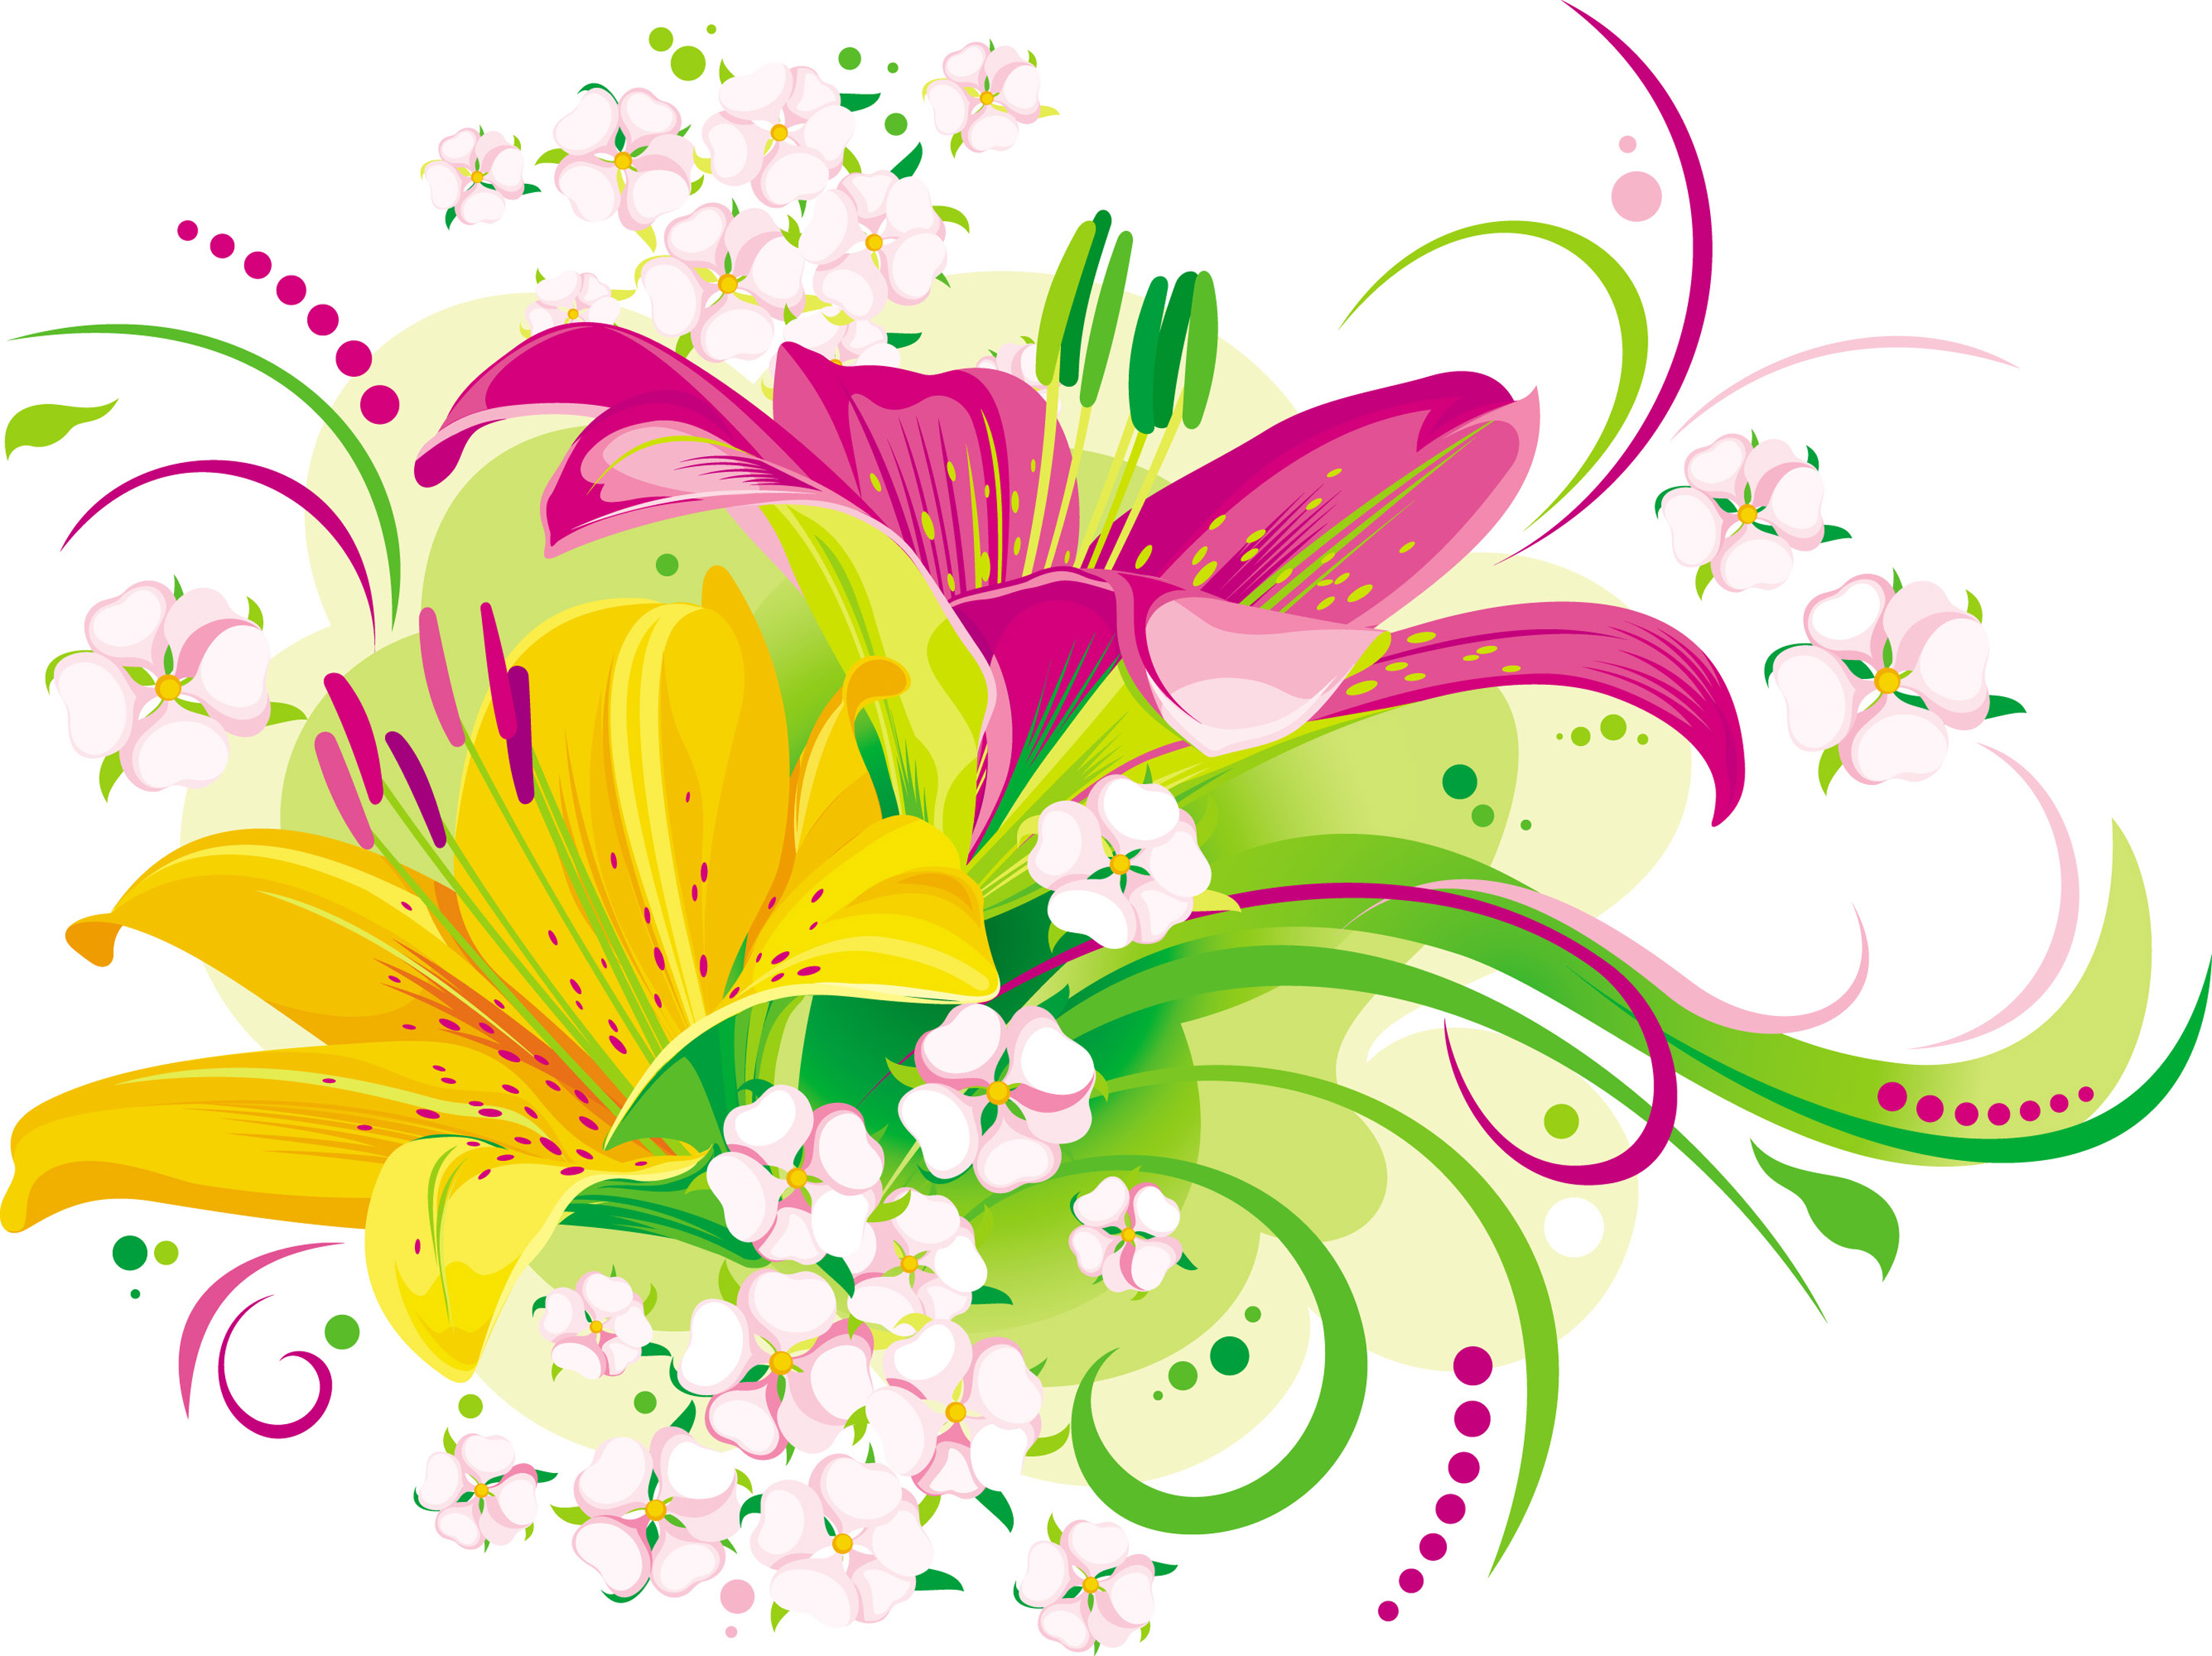 Flowers Vectors PNG Transparent Flowers Vectors.PNG Images..